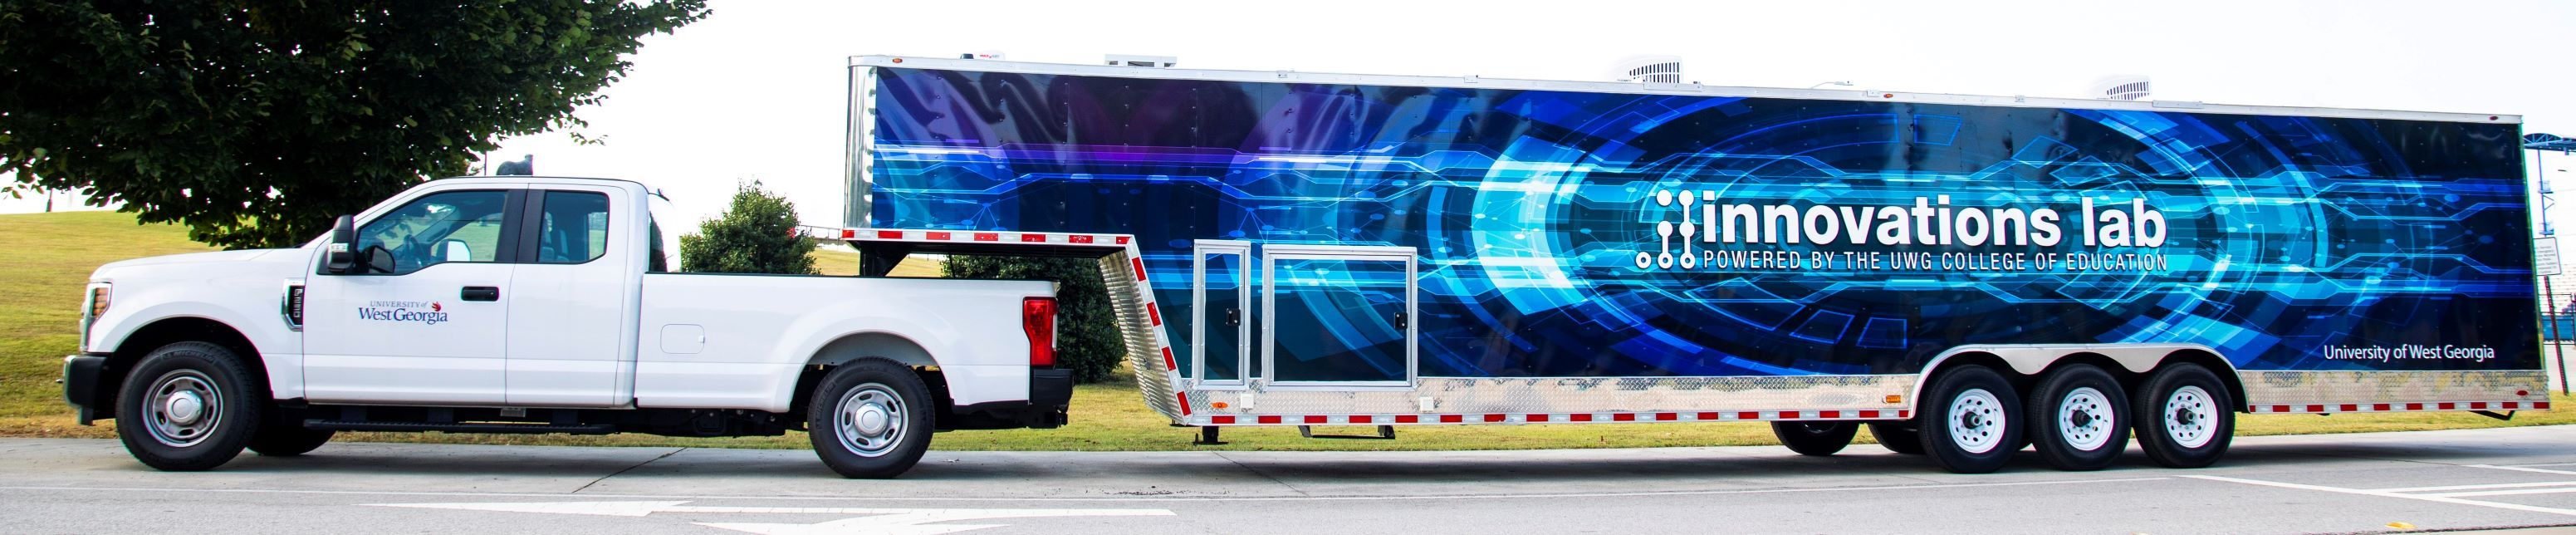 mobile innovation lab truck